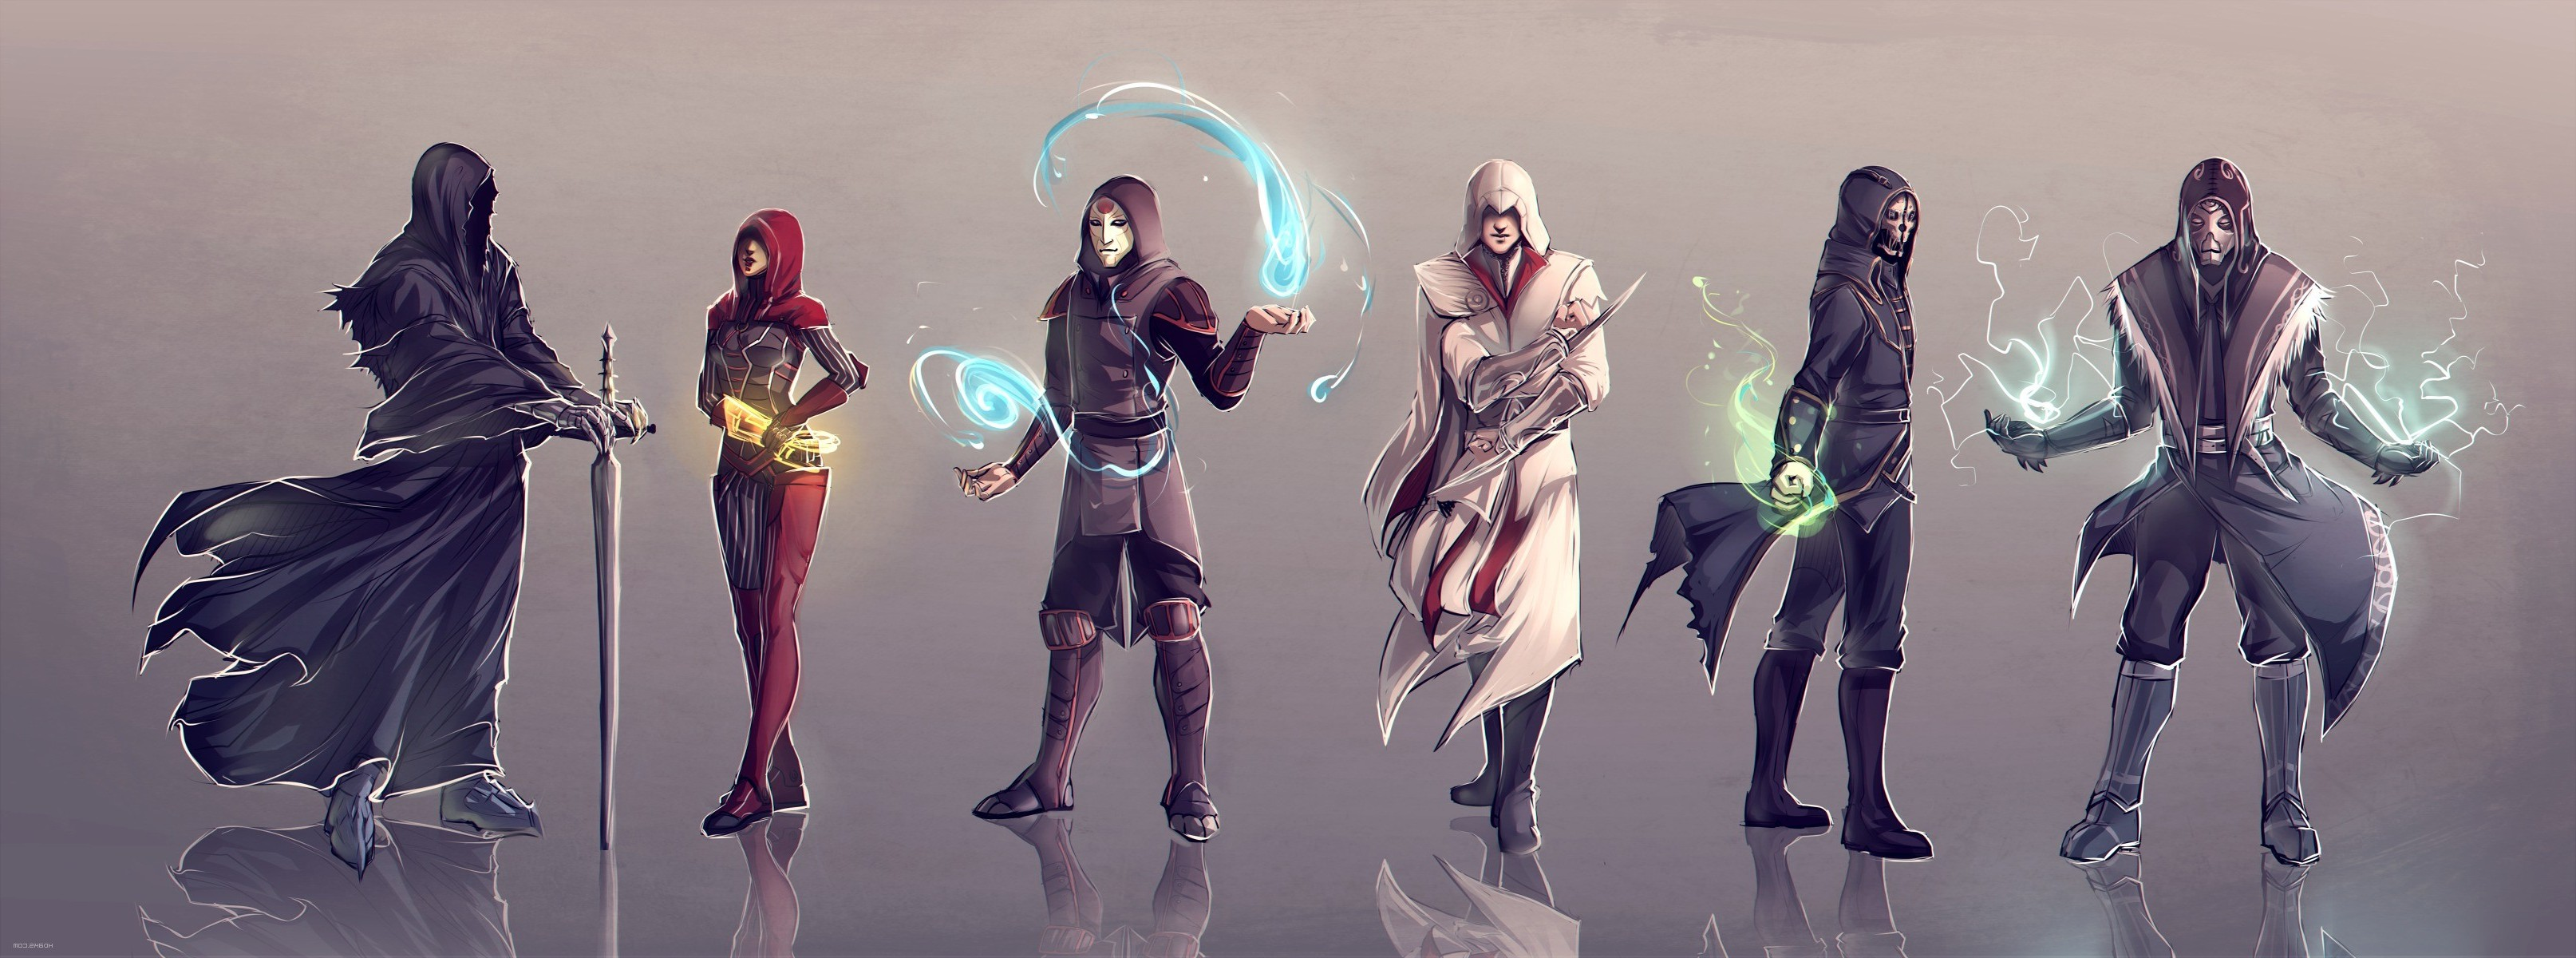 Hd Wallpapers Assassins Creed Dishonored Assassins Creed Mass Effect The Elder